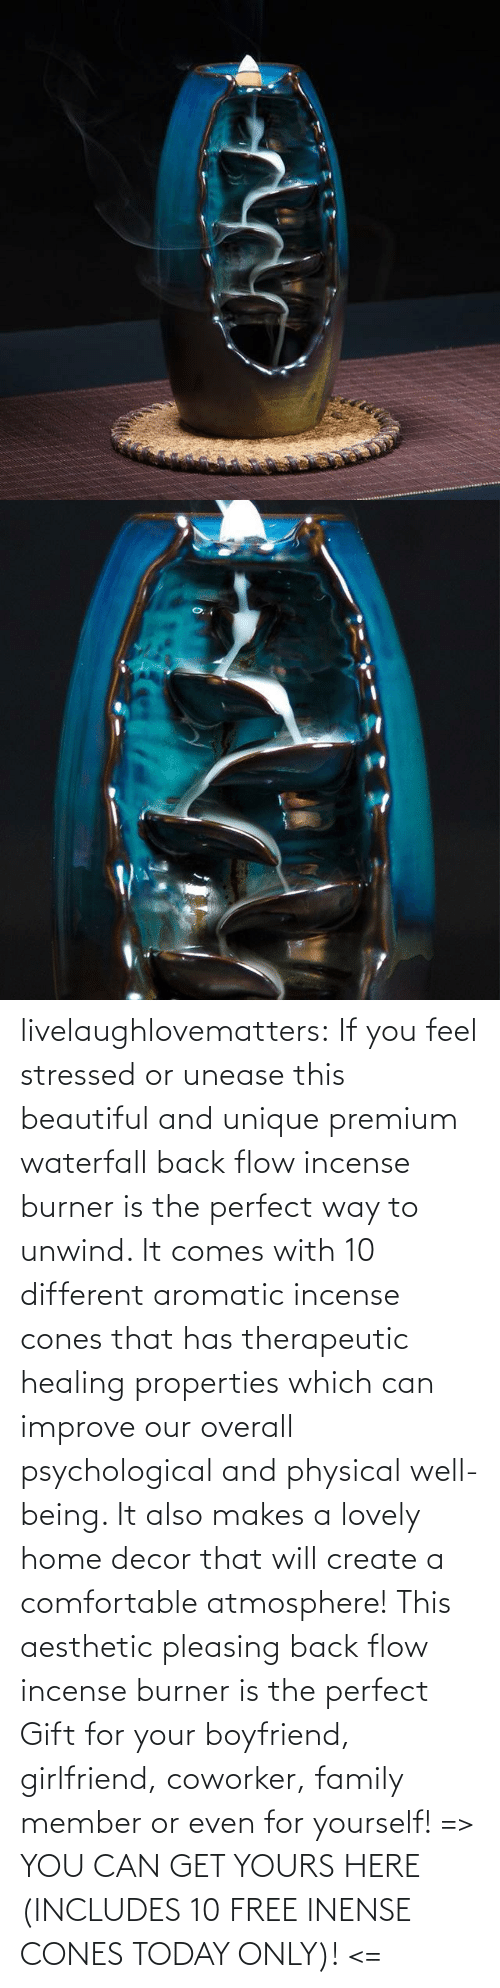 psychological: livelaughlovematters: If you feel stressed or unease this beautiful and unique premium waterfall back flow incense burner is the perfect way to unwind. It comes with 10 different aromatic incense cones that has therapeutic healing properties which can improve our overall psychological and physical well-being. It also makes a lovely home decor that will create a comfortable atmosphere! This aesthetic pleasing back flow incense burner is the perfect Gift for your boyfriend, girlfriend, coworker, family member or even for yourself! => YOU CAN GET YOURS HERE (INCLUDES 10 FREE INENSE CONES TODAY ONLY)! <=